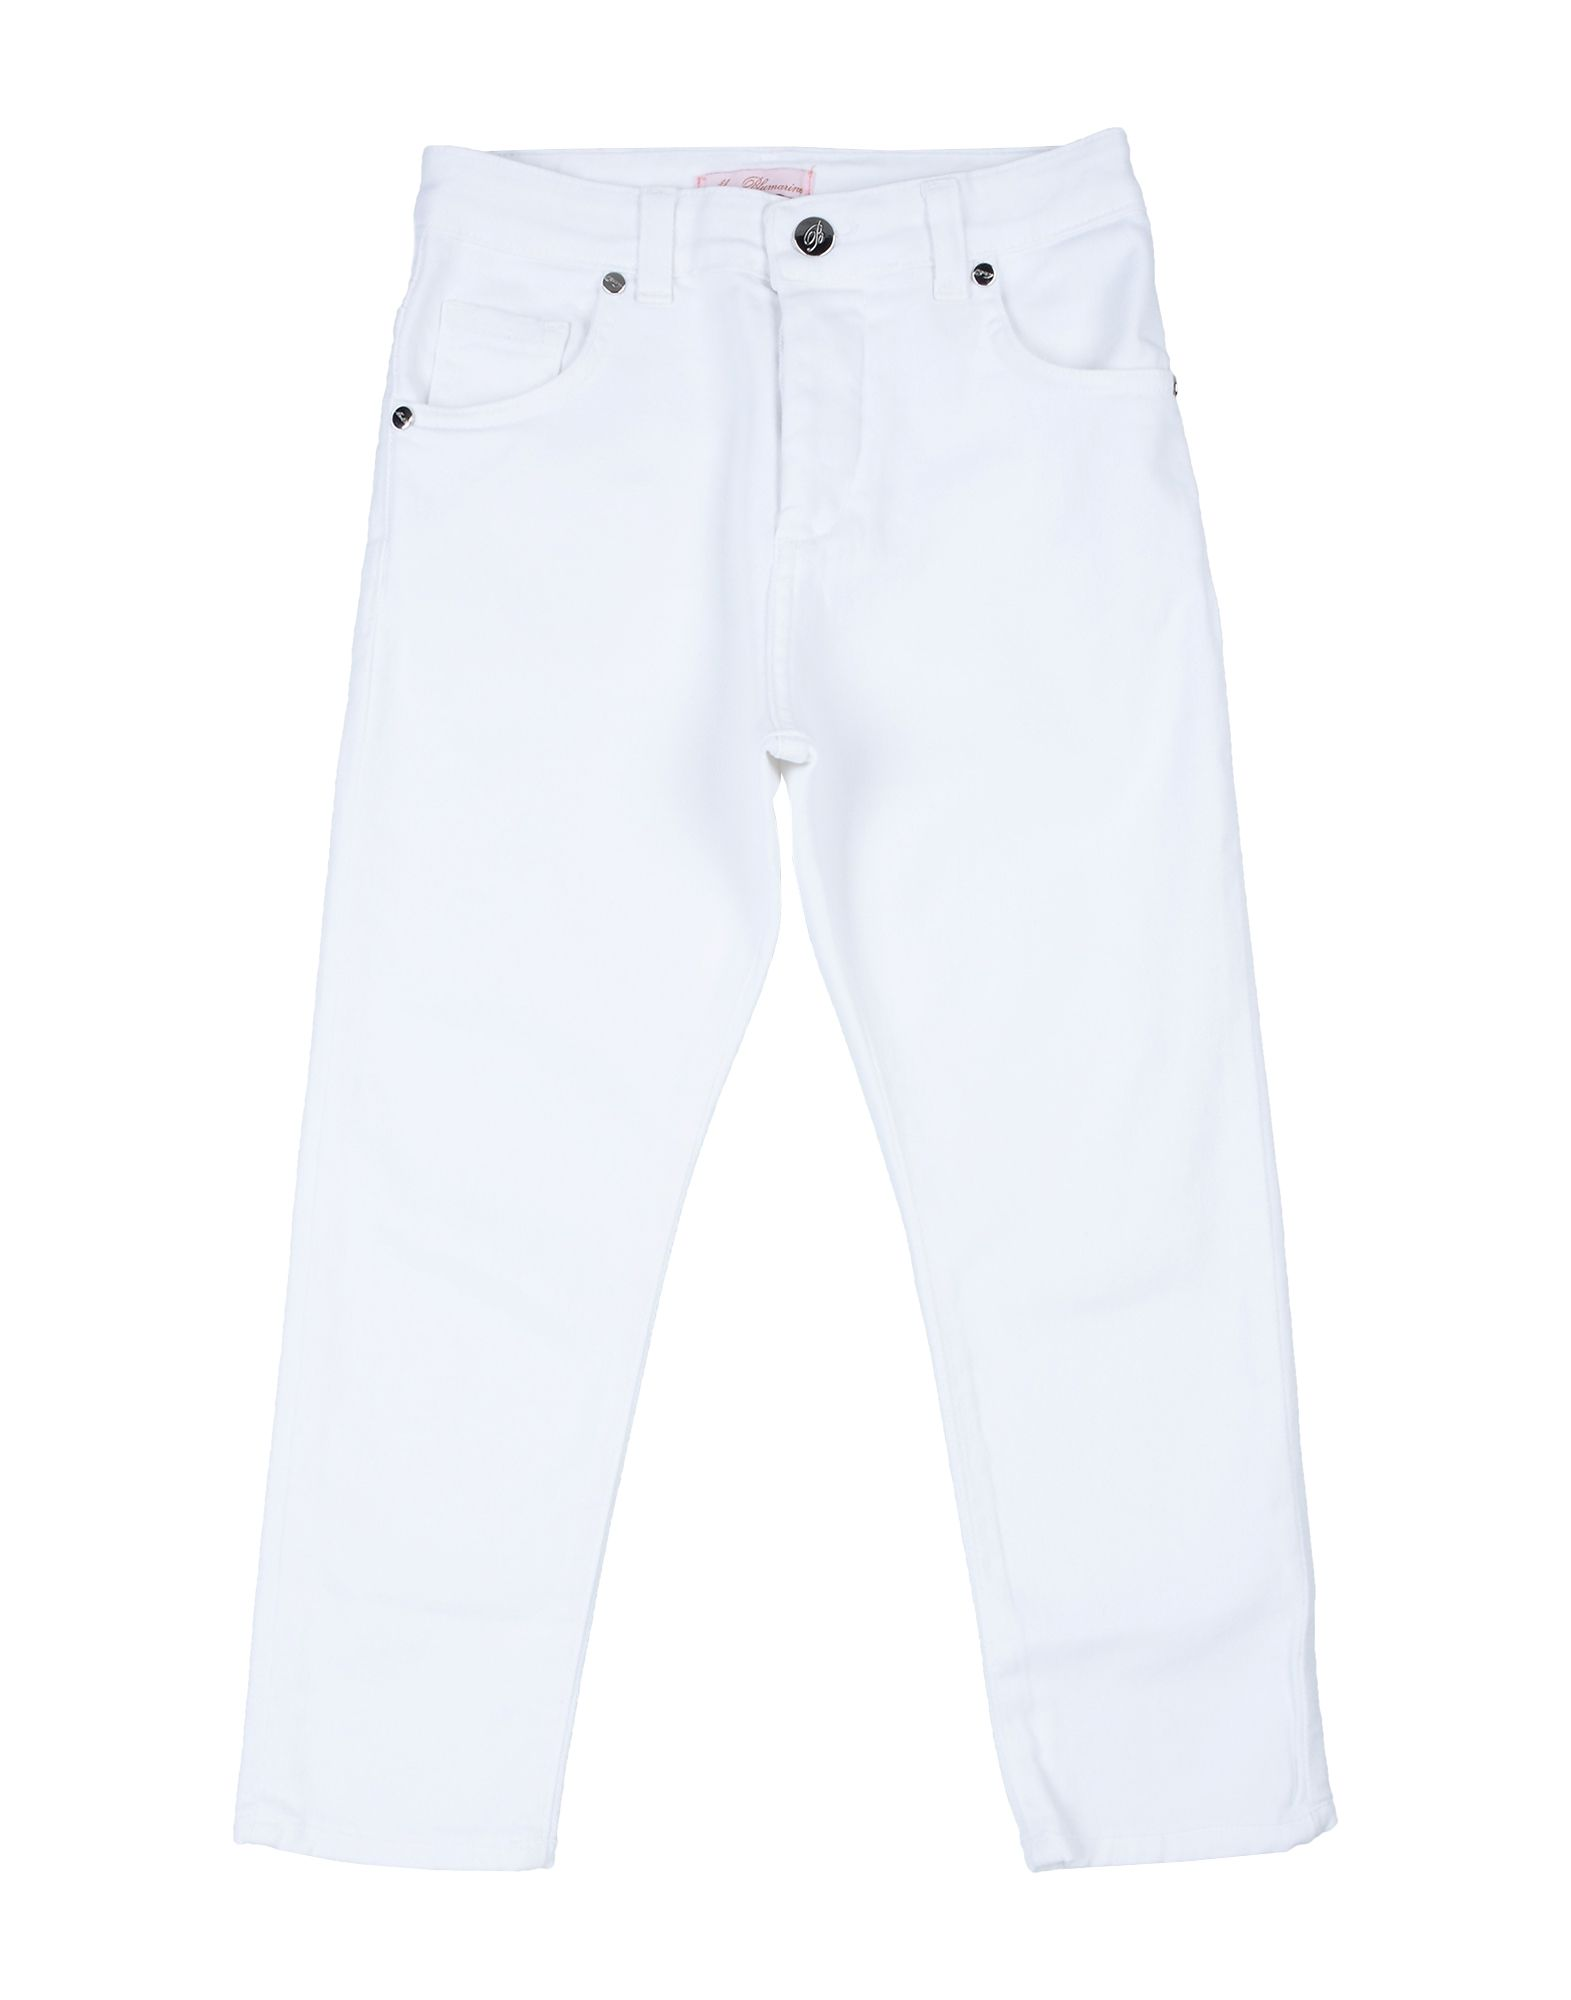 BLUMARINE | MISS BLUMARINE Denim Pants 42751231 | Goxip